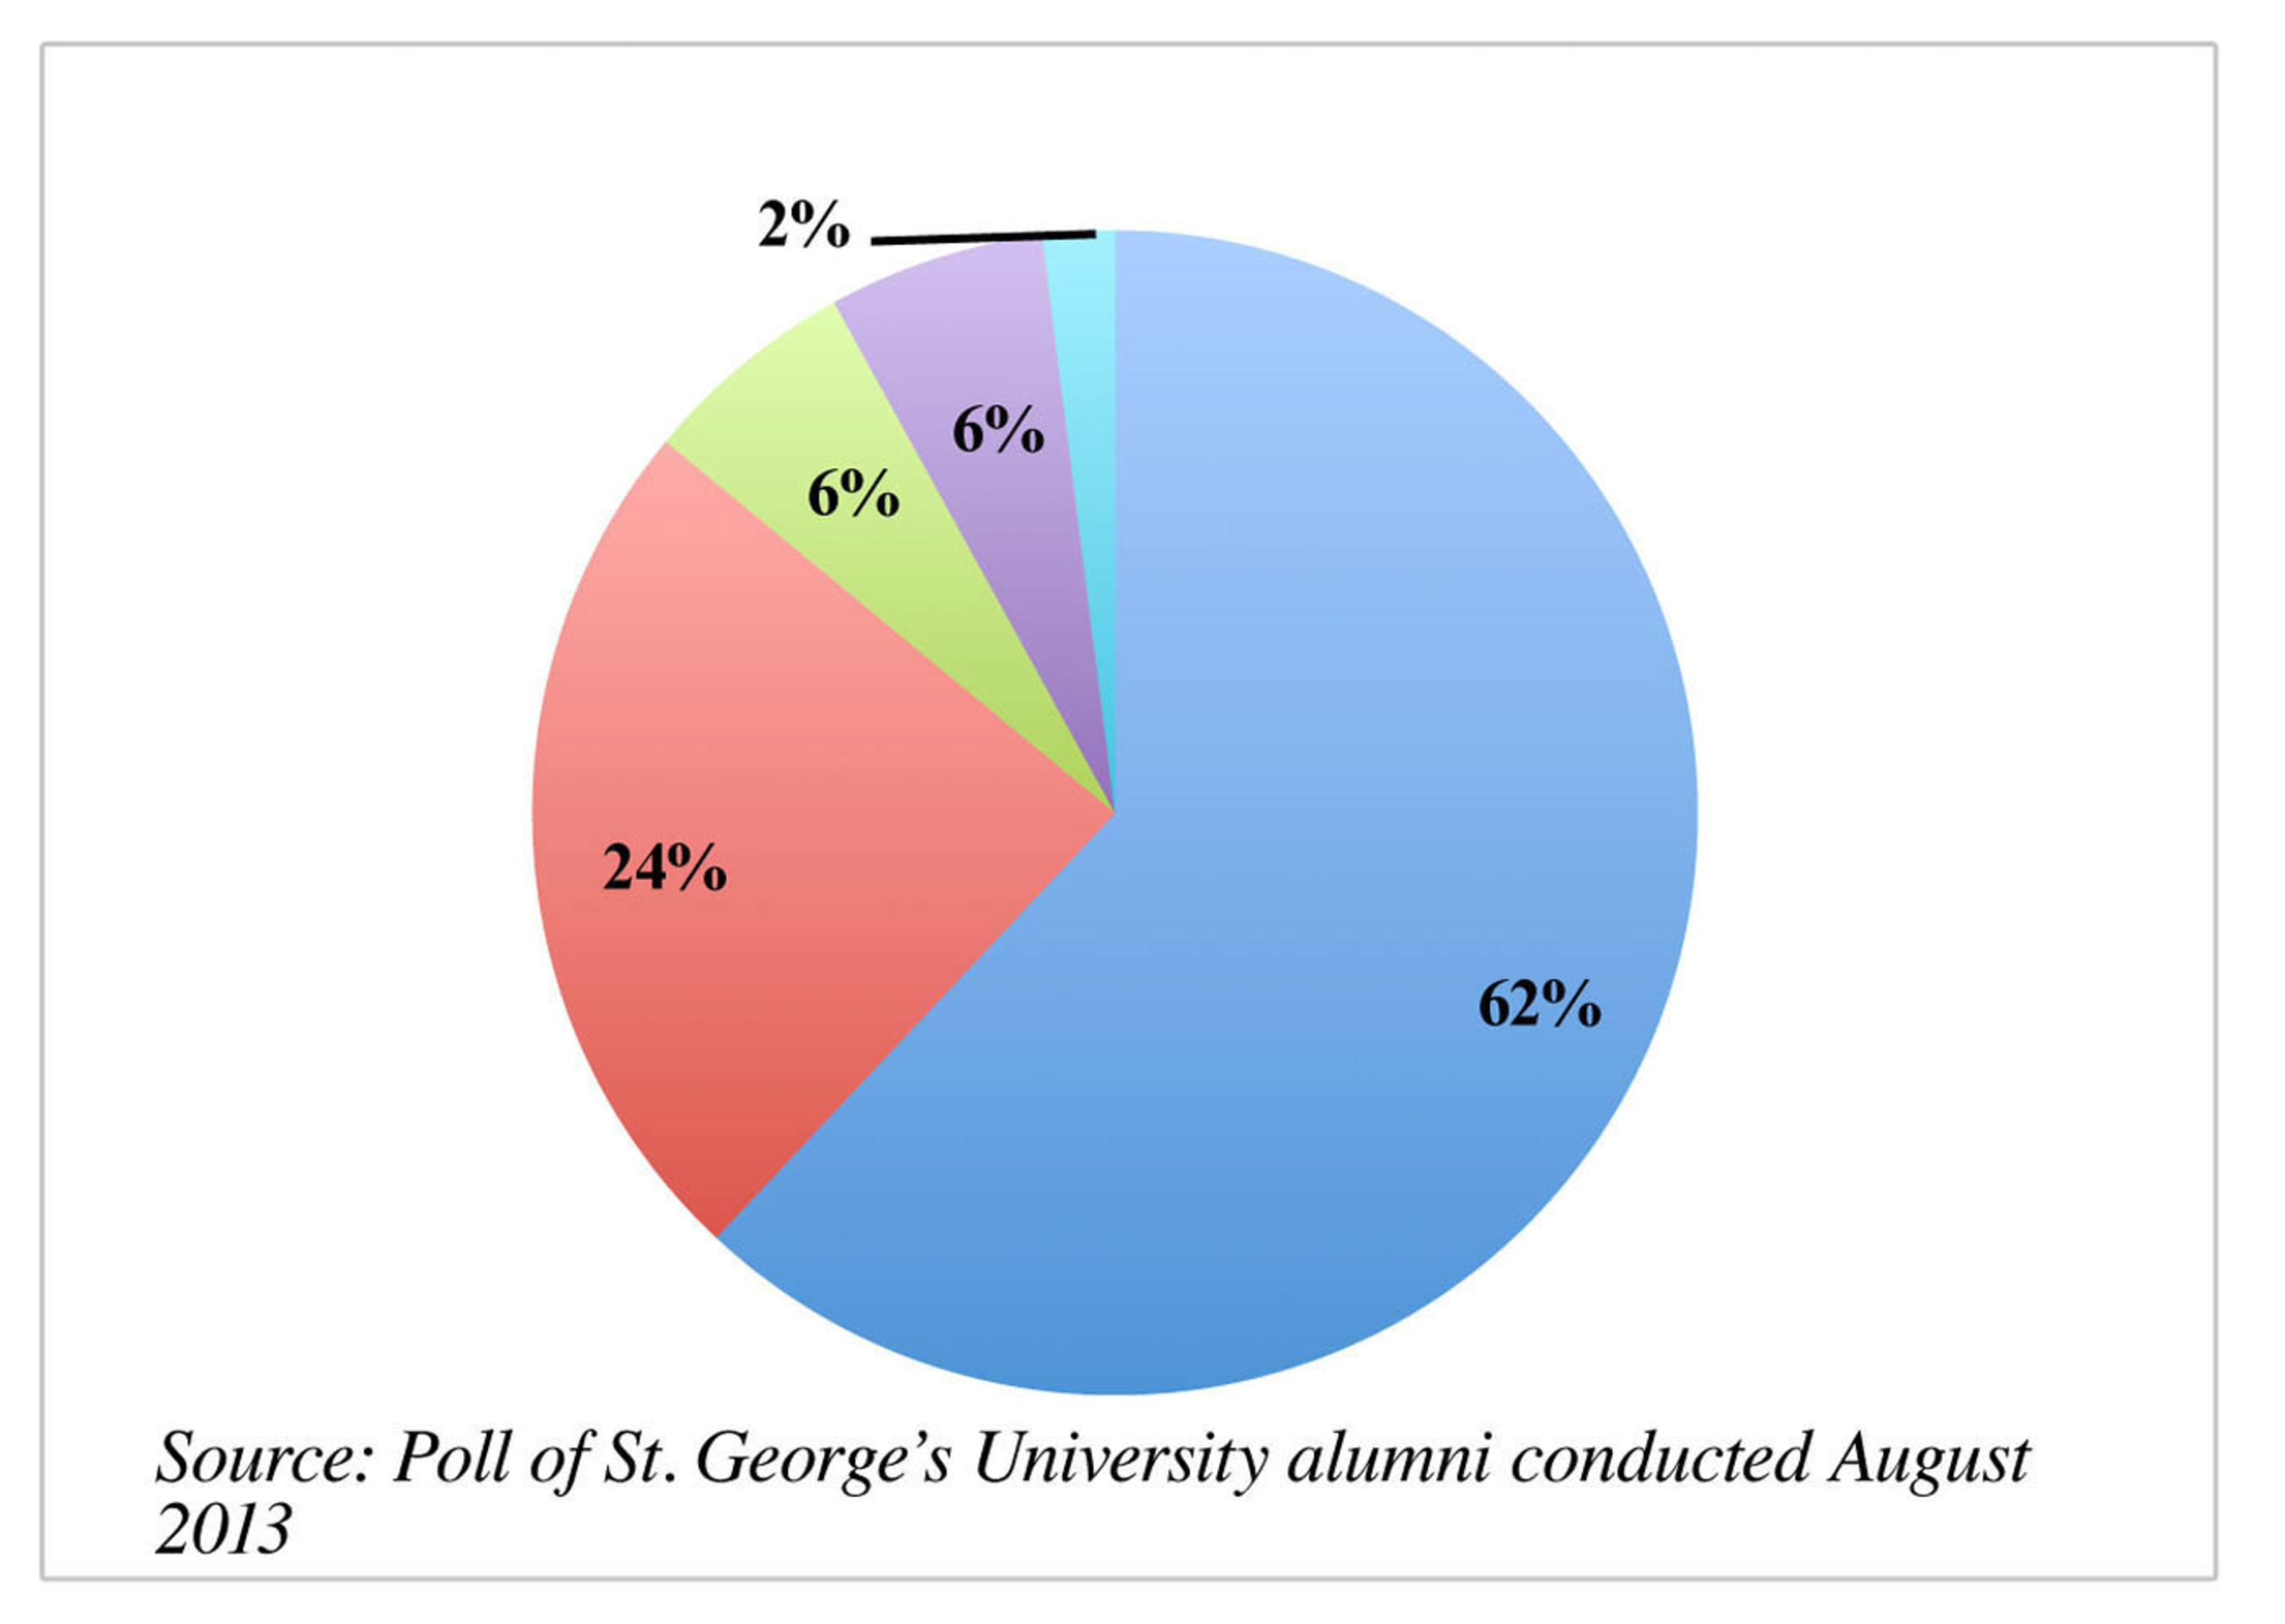 Poll Of St. George's University Alumni Reveals Health Practitioners Believe Global Accreditation Authority Would Benefit Medical Field.  (PRNewsFoto/St. George's University)